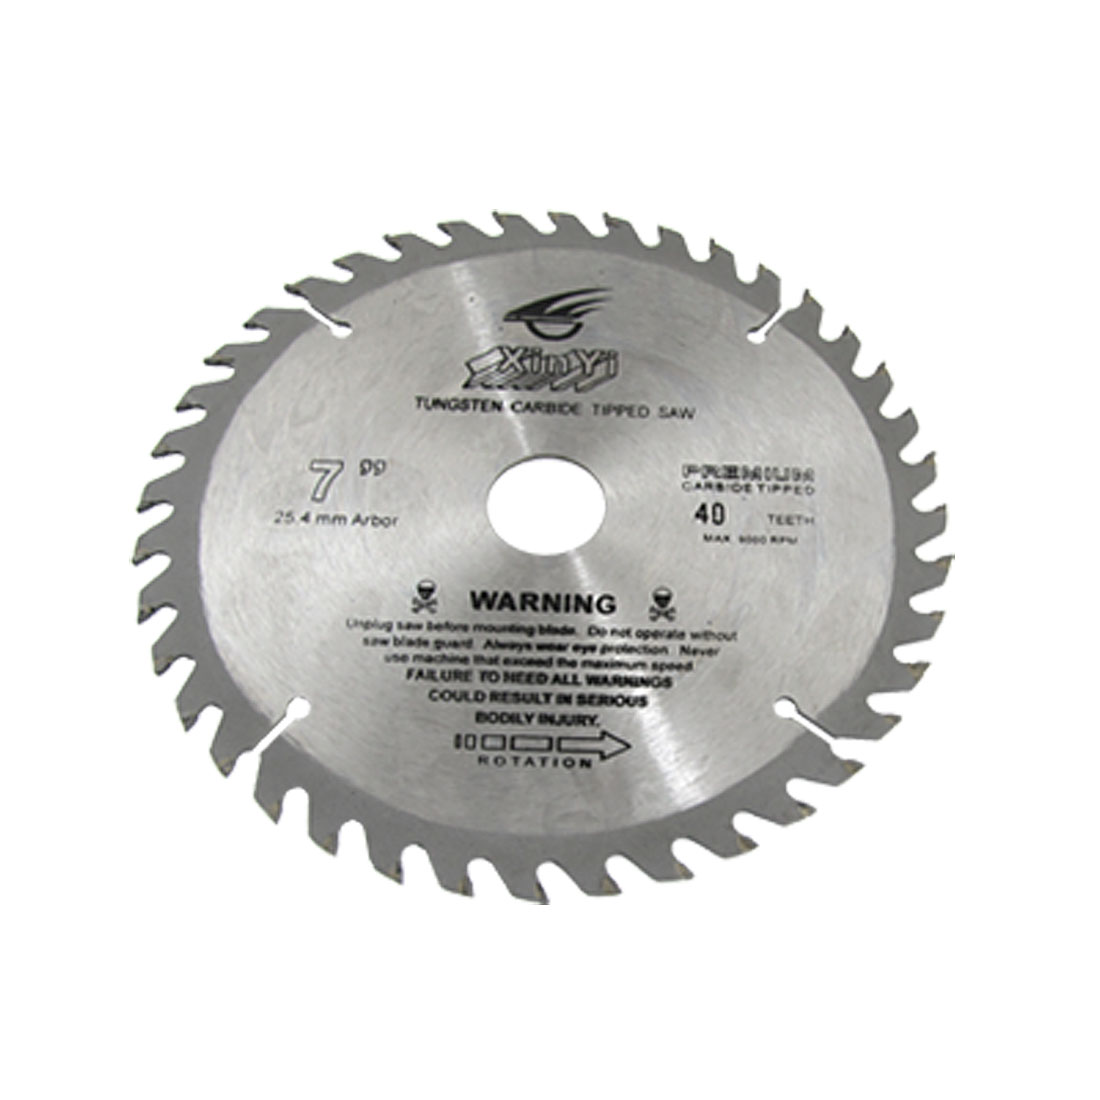 "7"" Diameter 40 Toothed Tungsten Carbide Tipped Cutter"